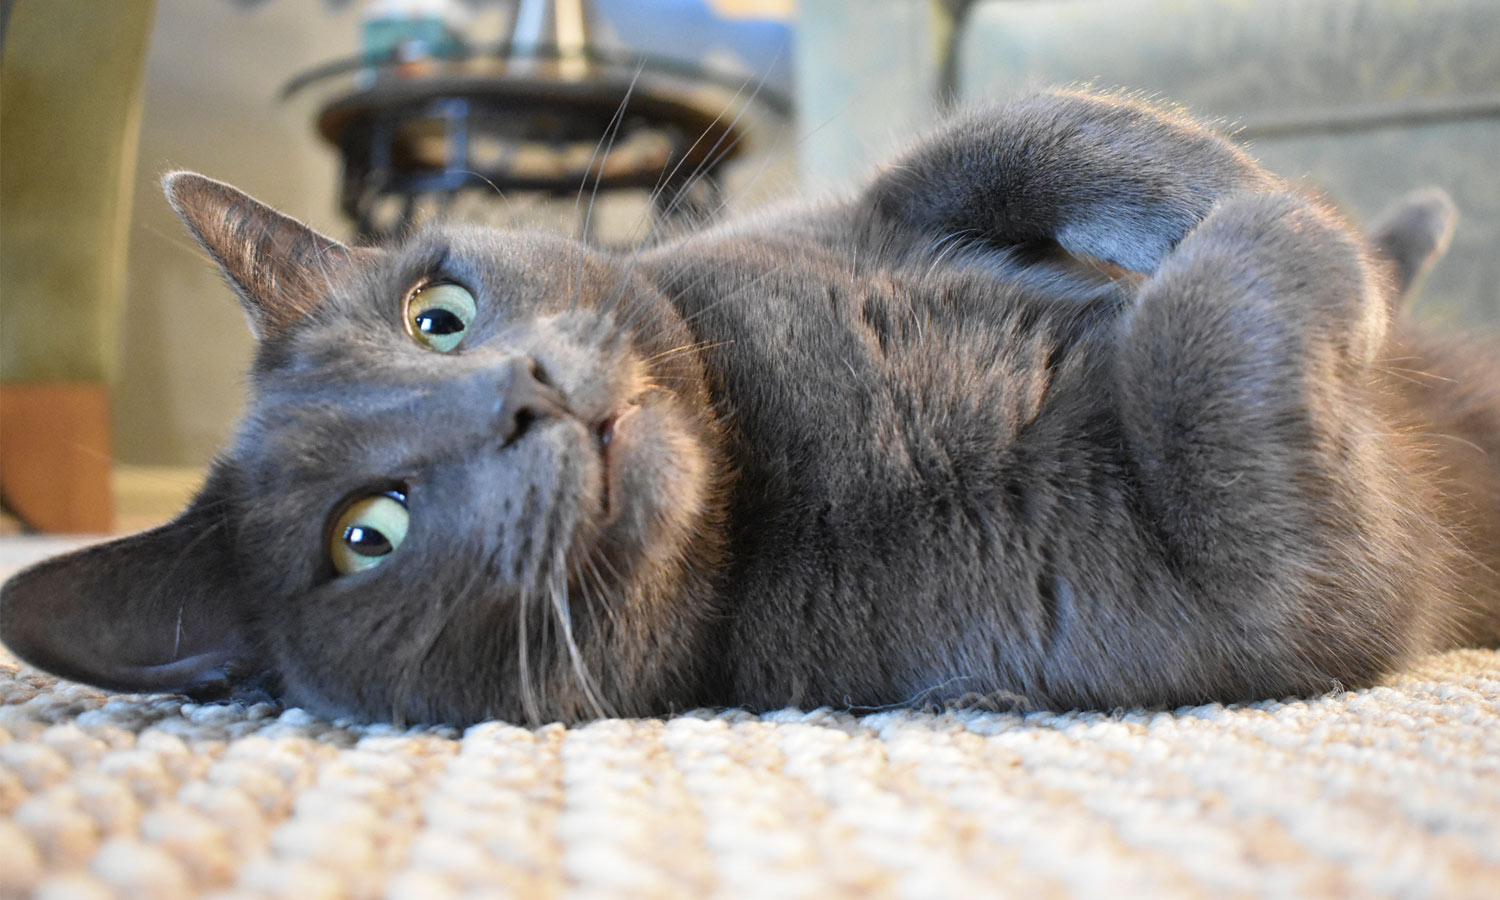 Leila sent a picture of her stunning grey and green-eyed cat, Stella, who is relaxing on the floor.